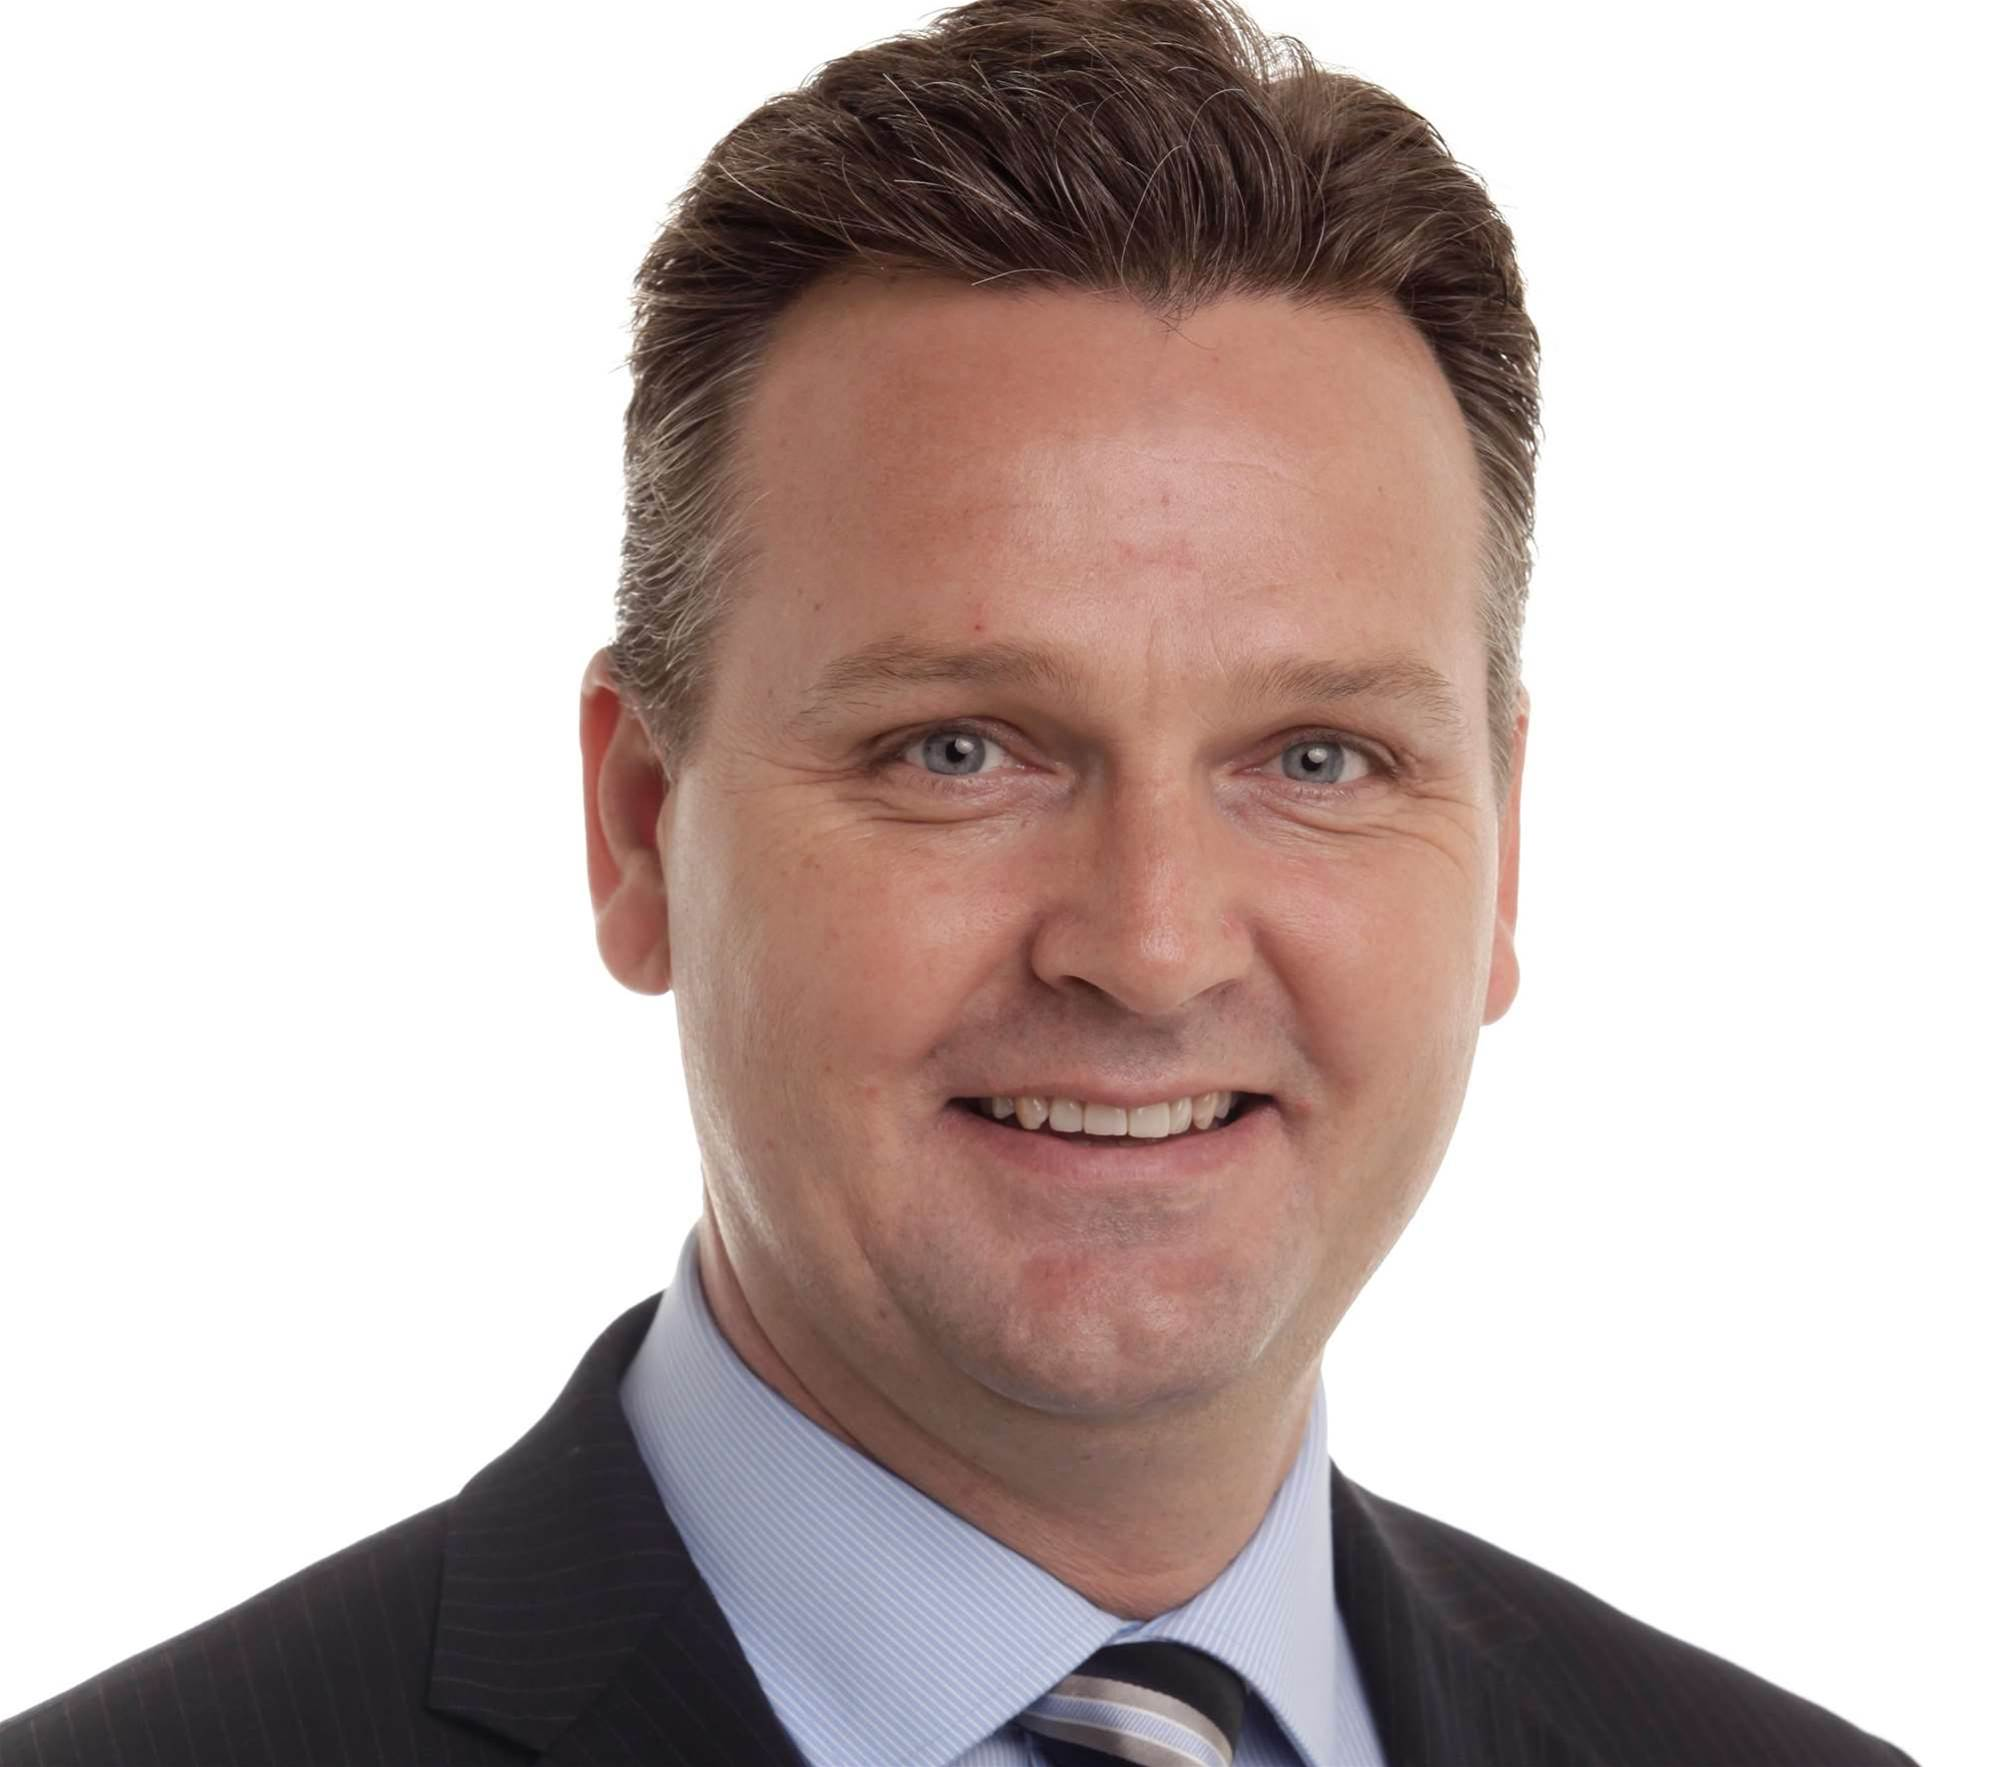 WorleyParsons CIO warns his peers to 'mind the gap'